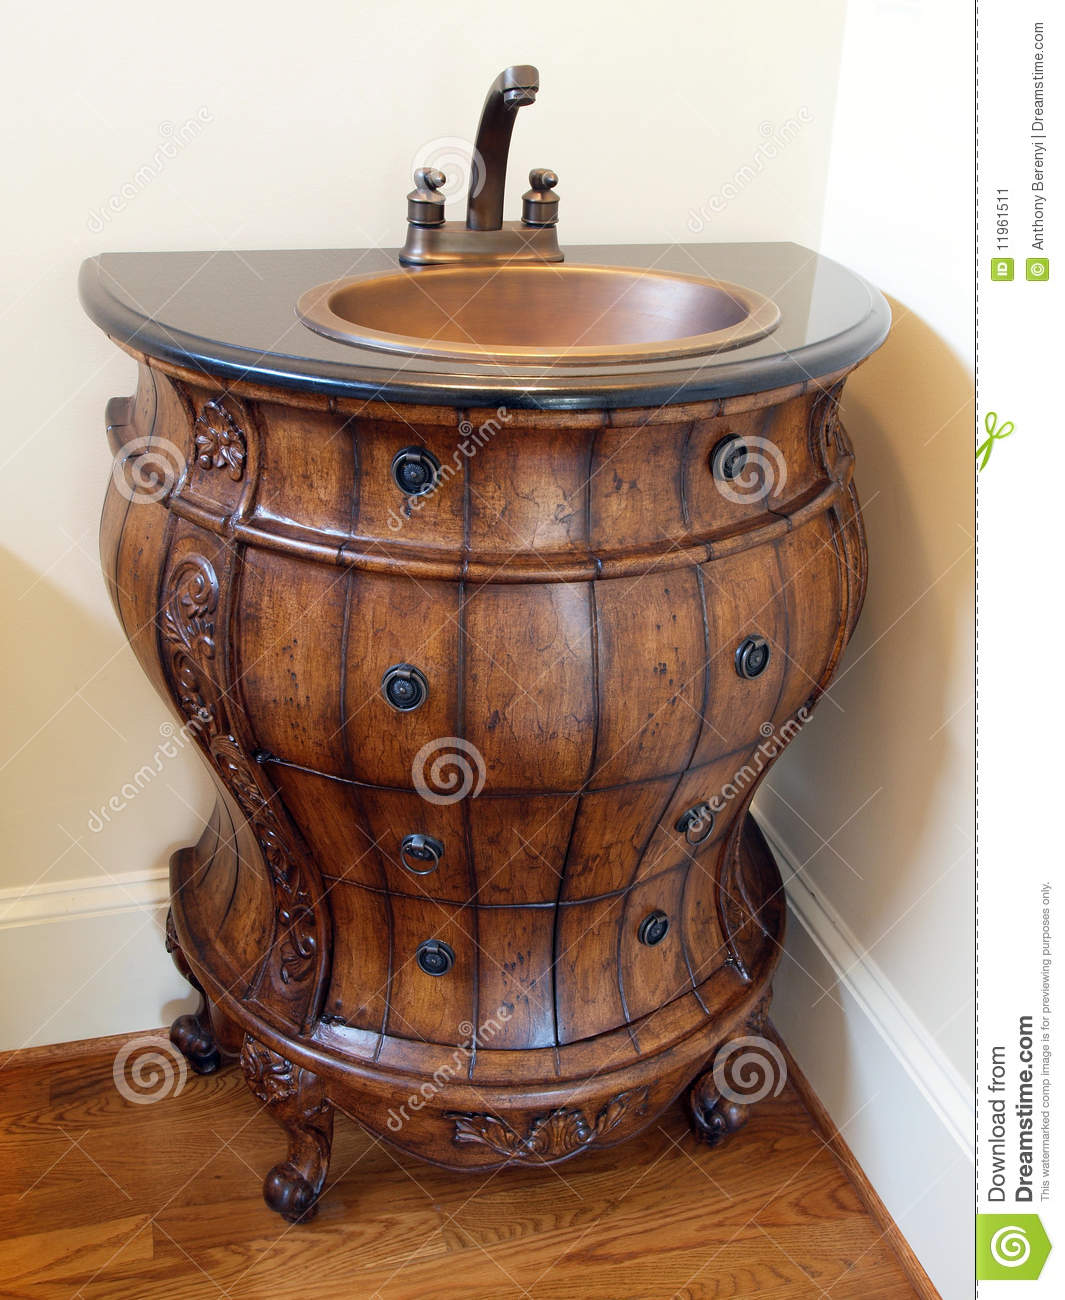 Model Luxury Home Interior Barrel Sink Stock Image